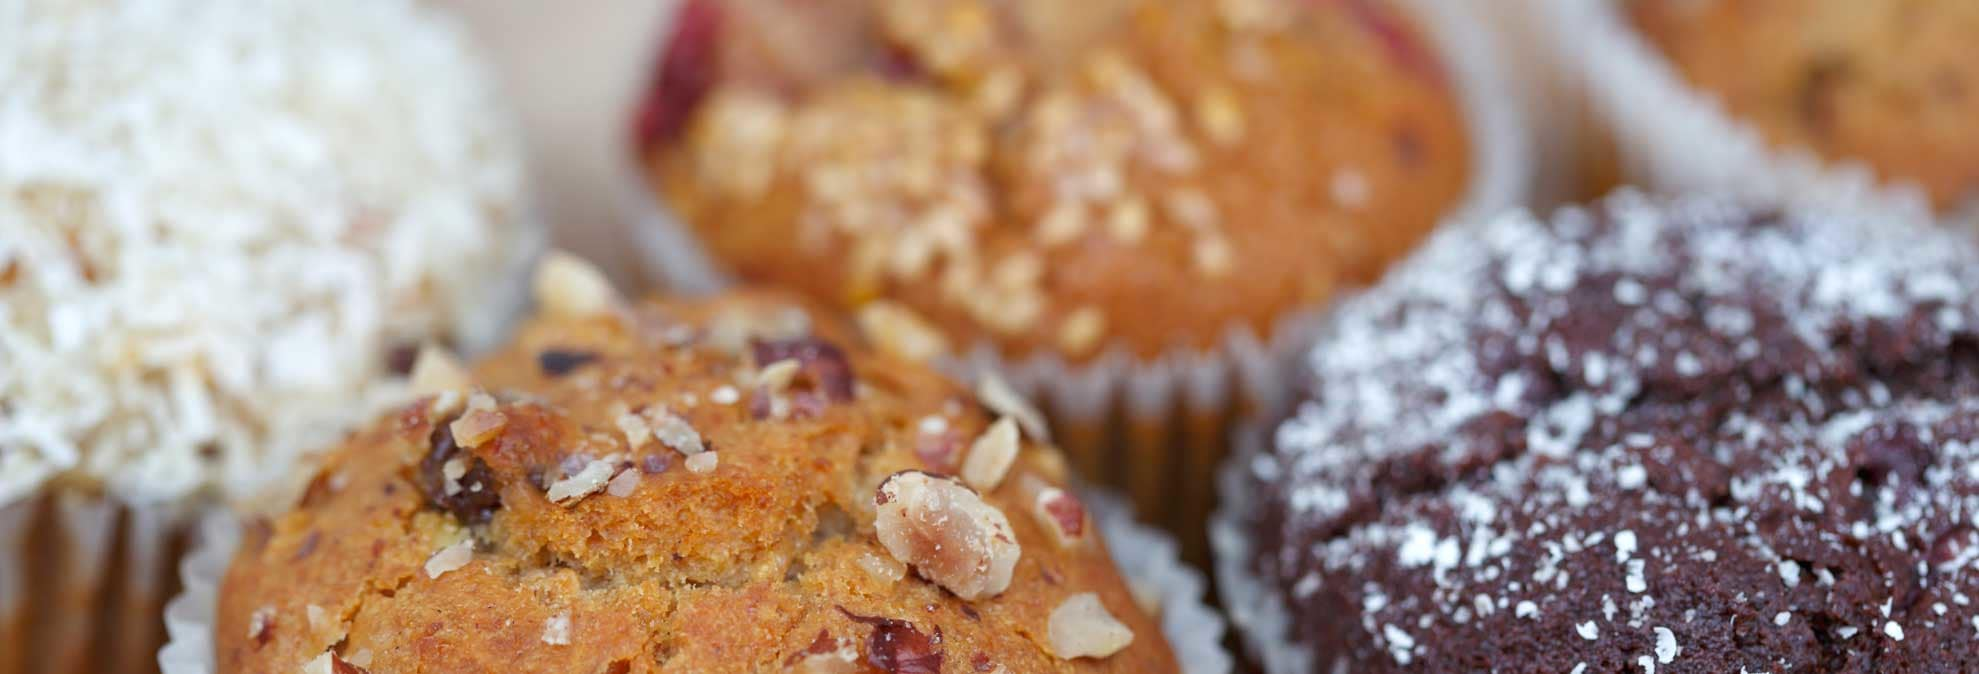 Reasons to Keep Trans Fats Out of Your Diet - Consumer Reports